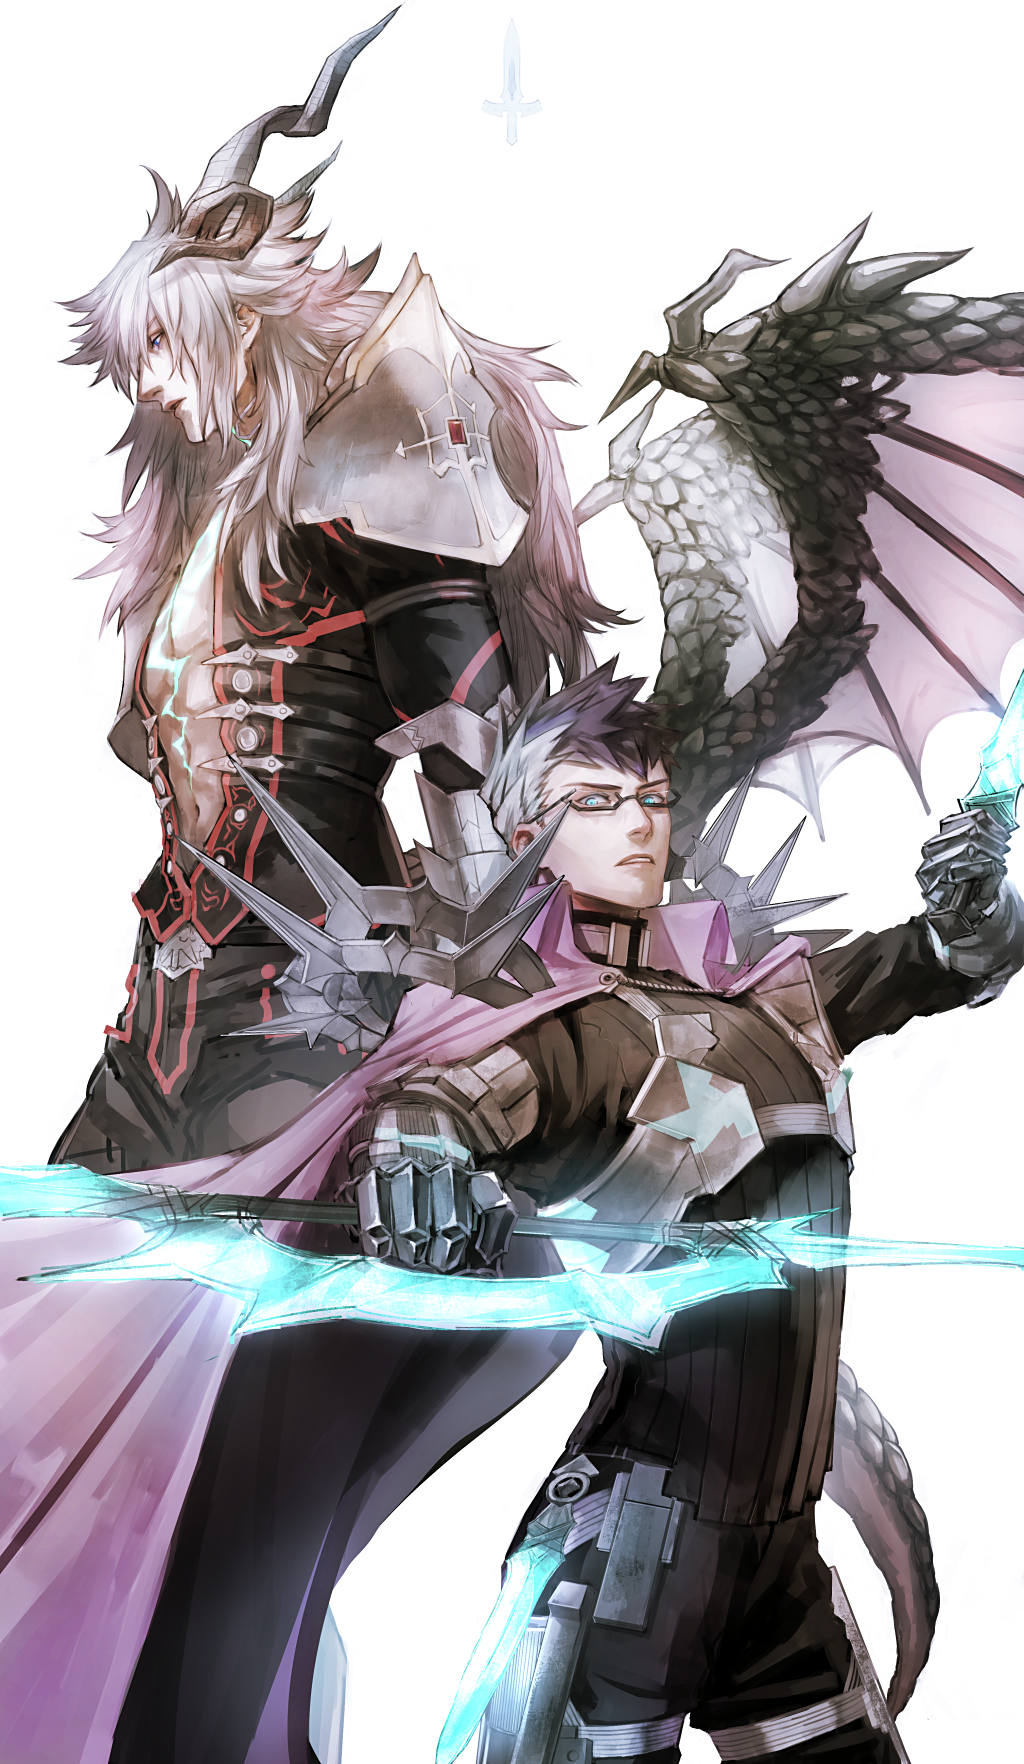 2boys abs armor bangs blue_eyes blue_hair cape chest dark_skin dark_skinned_male fate/apocrypha fate/grand_order fate_(series) fighting_stance glasses green_eyes highres horns kuroda_matsurika long_hair looking_at_viewer male_focus mini_wings multicolored_hair multiple_boys open_mouth pectorals platinum_blonde_hair revealing_clothes short_hair shoulder_armor shoulder_spikes siegfried_(fate) sigurd_(fate/grand_order) simple_background spikes spiky_hair sword weapon white_hair wings